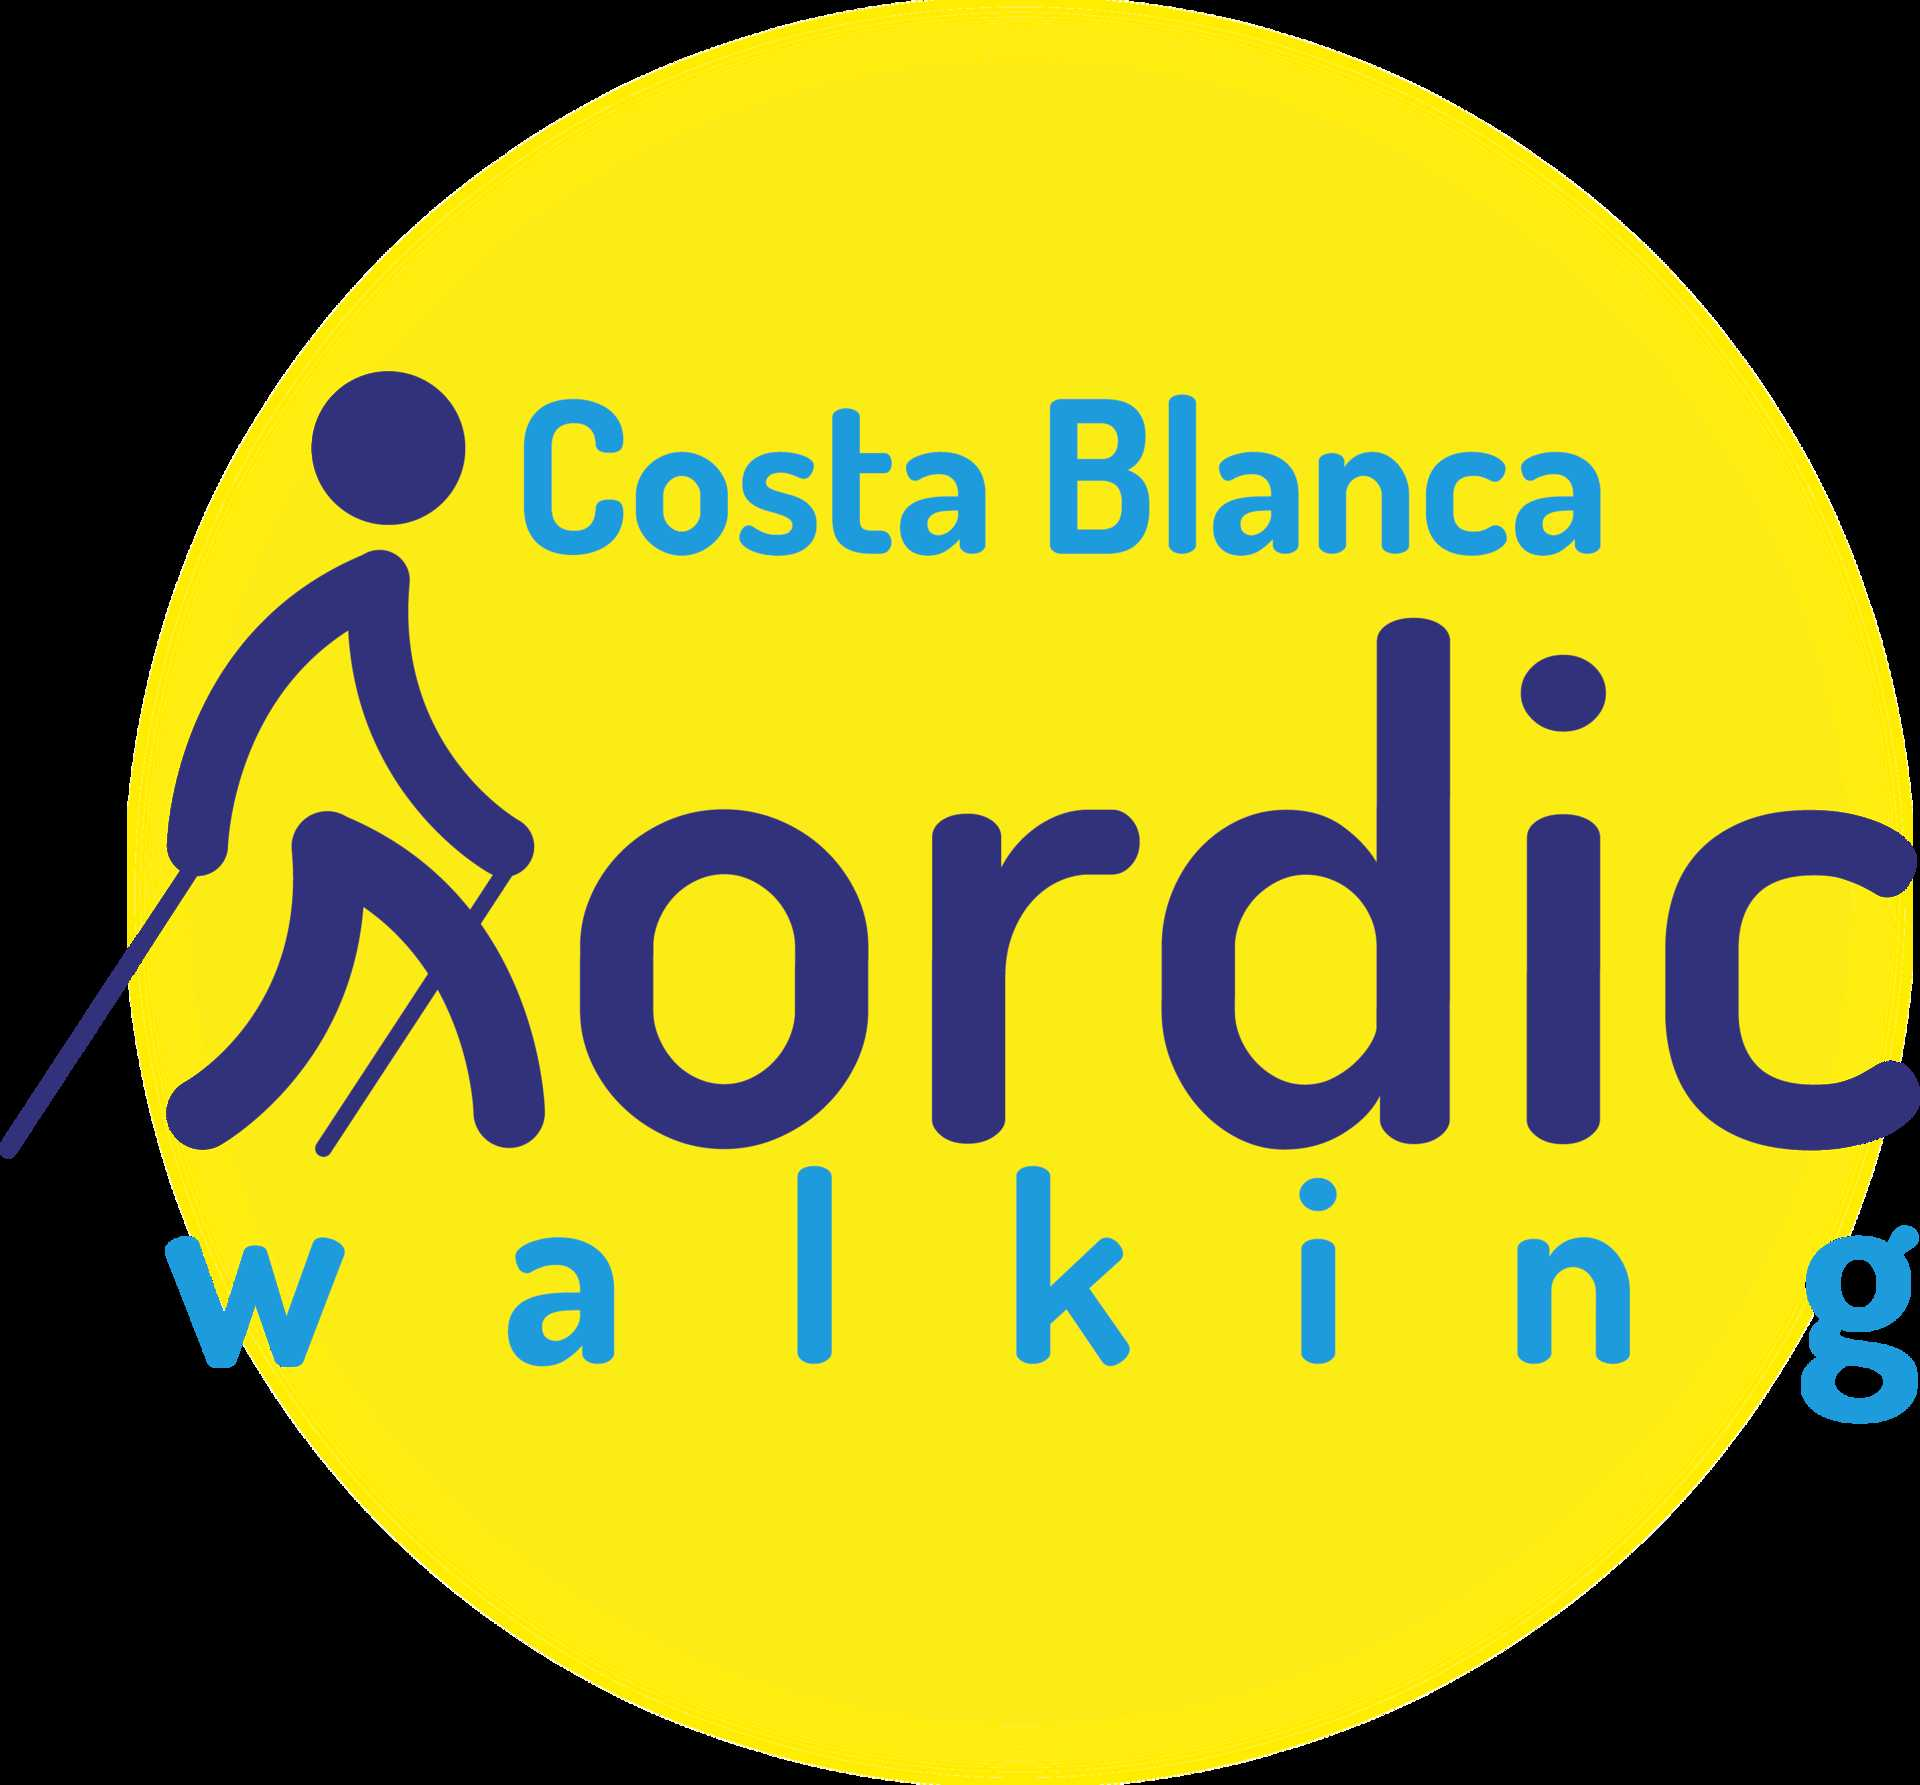 COSTA BLANCA NORDIC WALKING